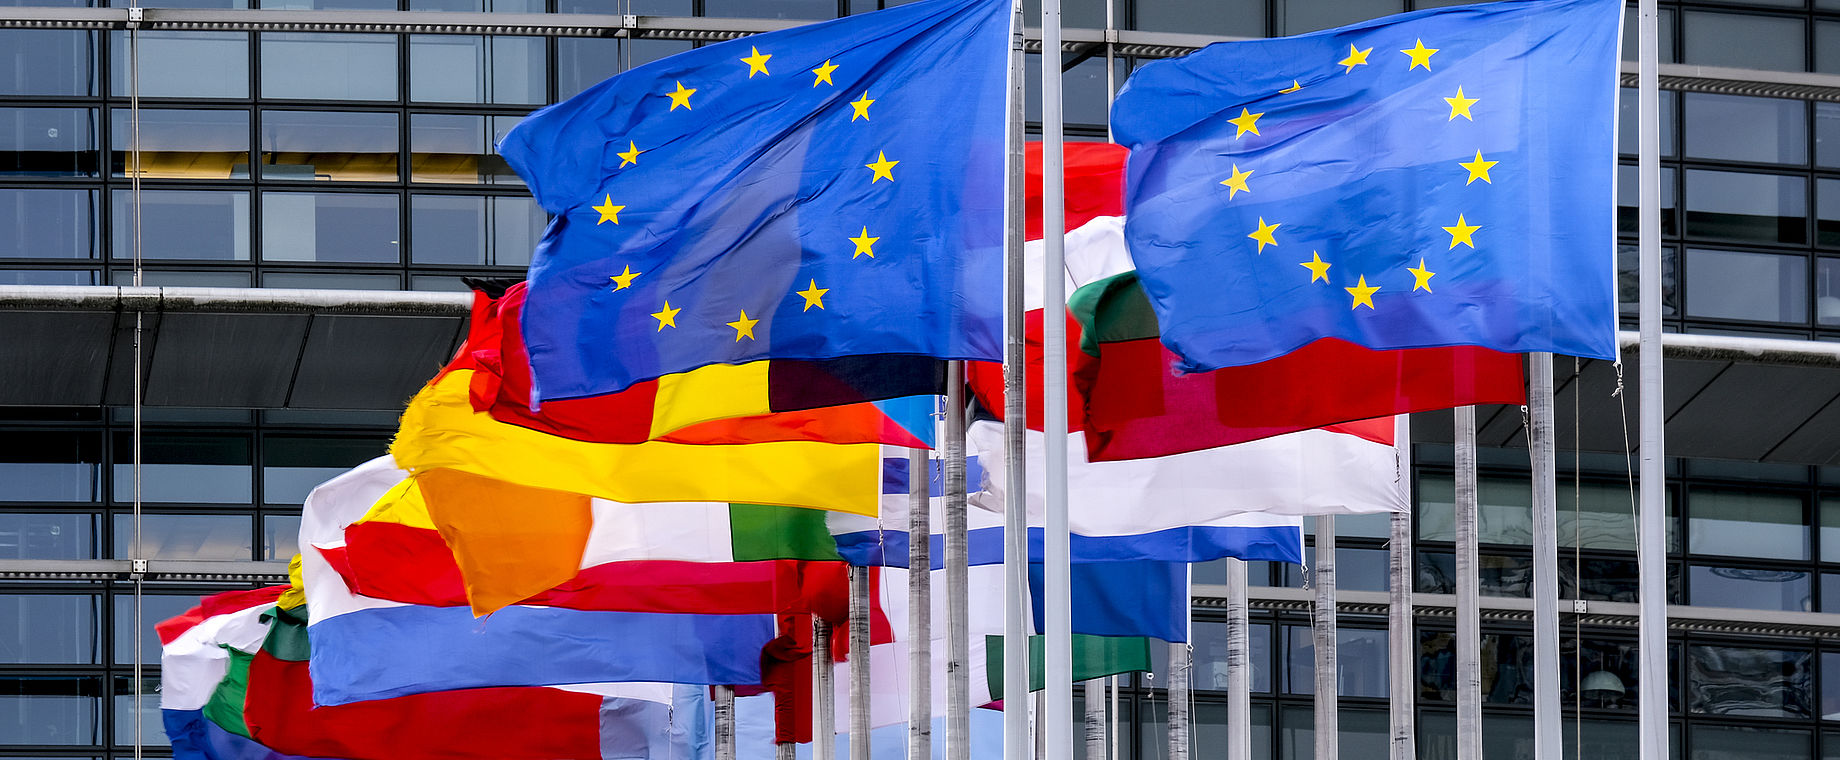 a64c7c58195 EU Brings High Income Gains to its Members by Reducing Trade Costs